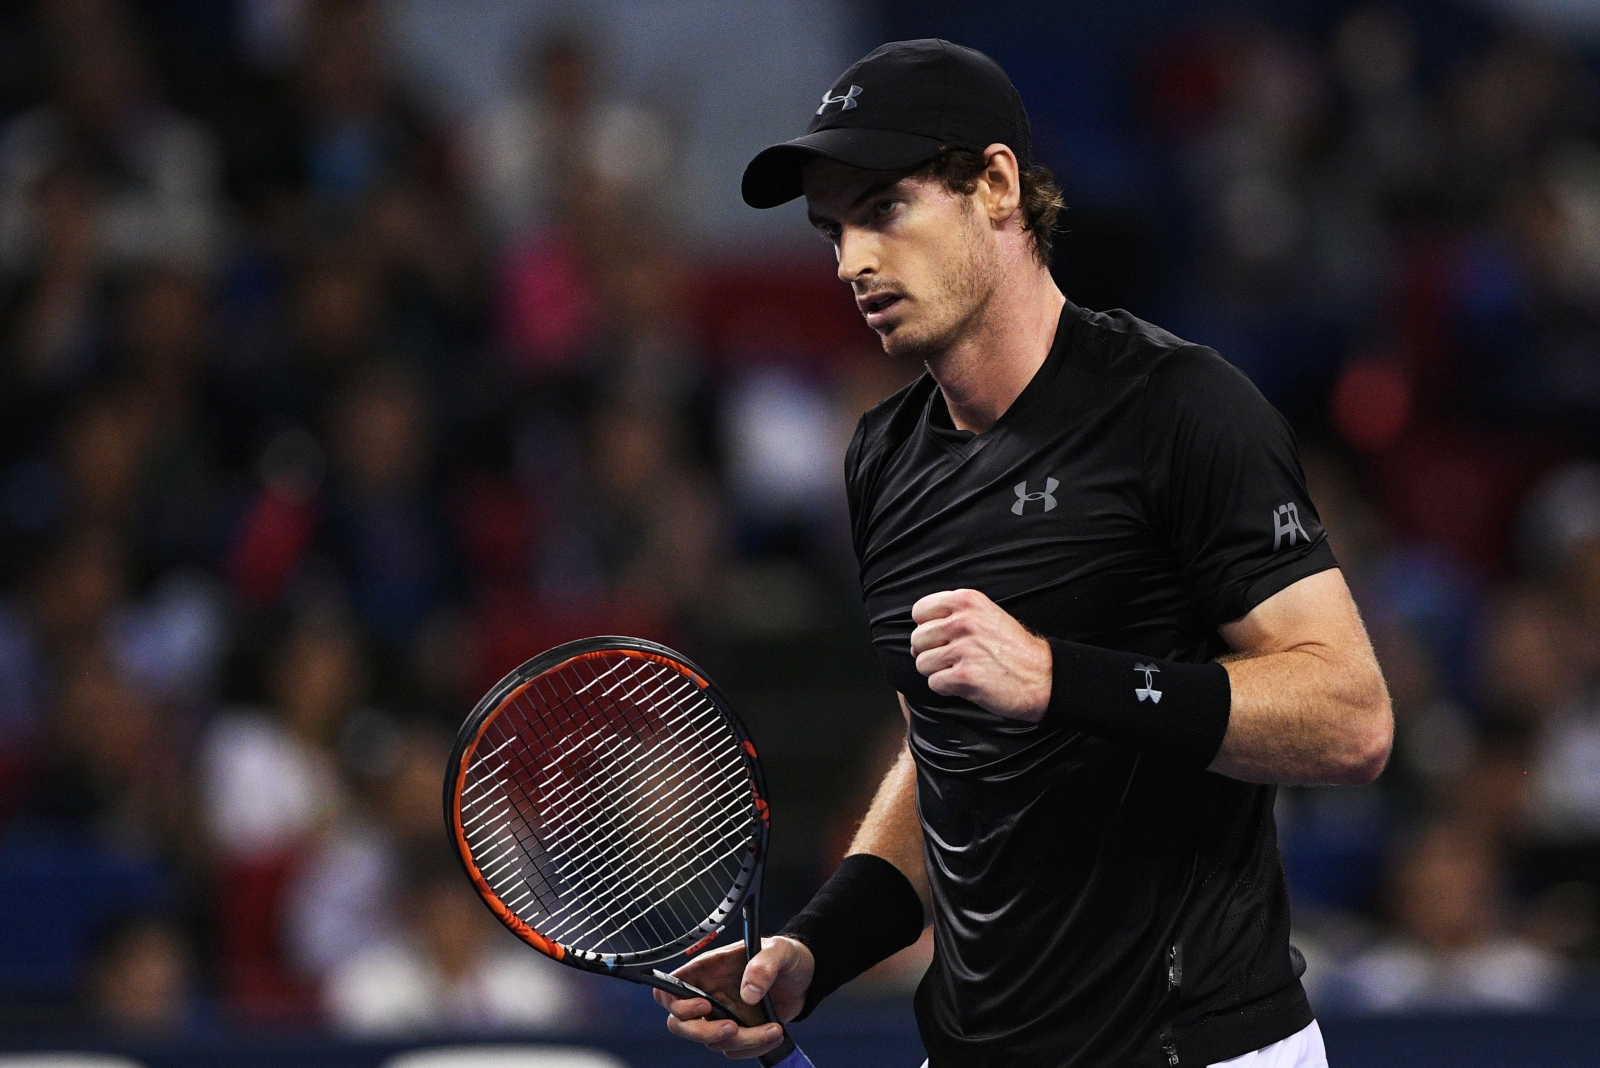 Andy Murray powers past Bautista Agut to win Shanghai Masters